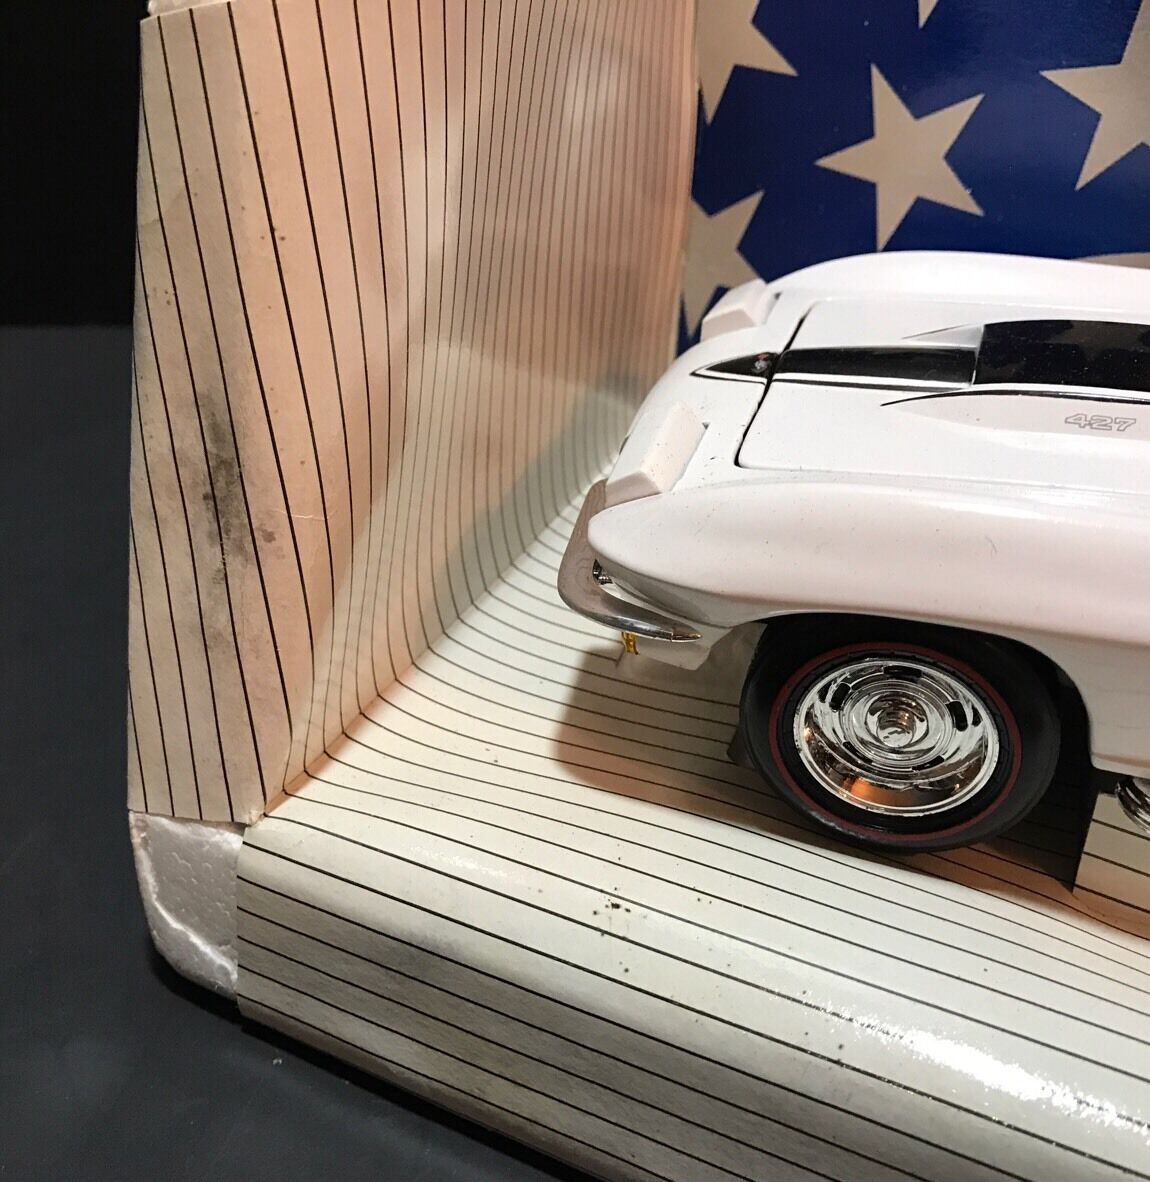 Ertl 1967 Chevrolet Corvette L-88 White 7403TO American American American Muscle Congreenible Chevy 2a761a